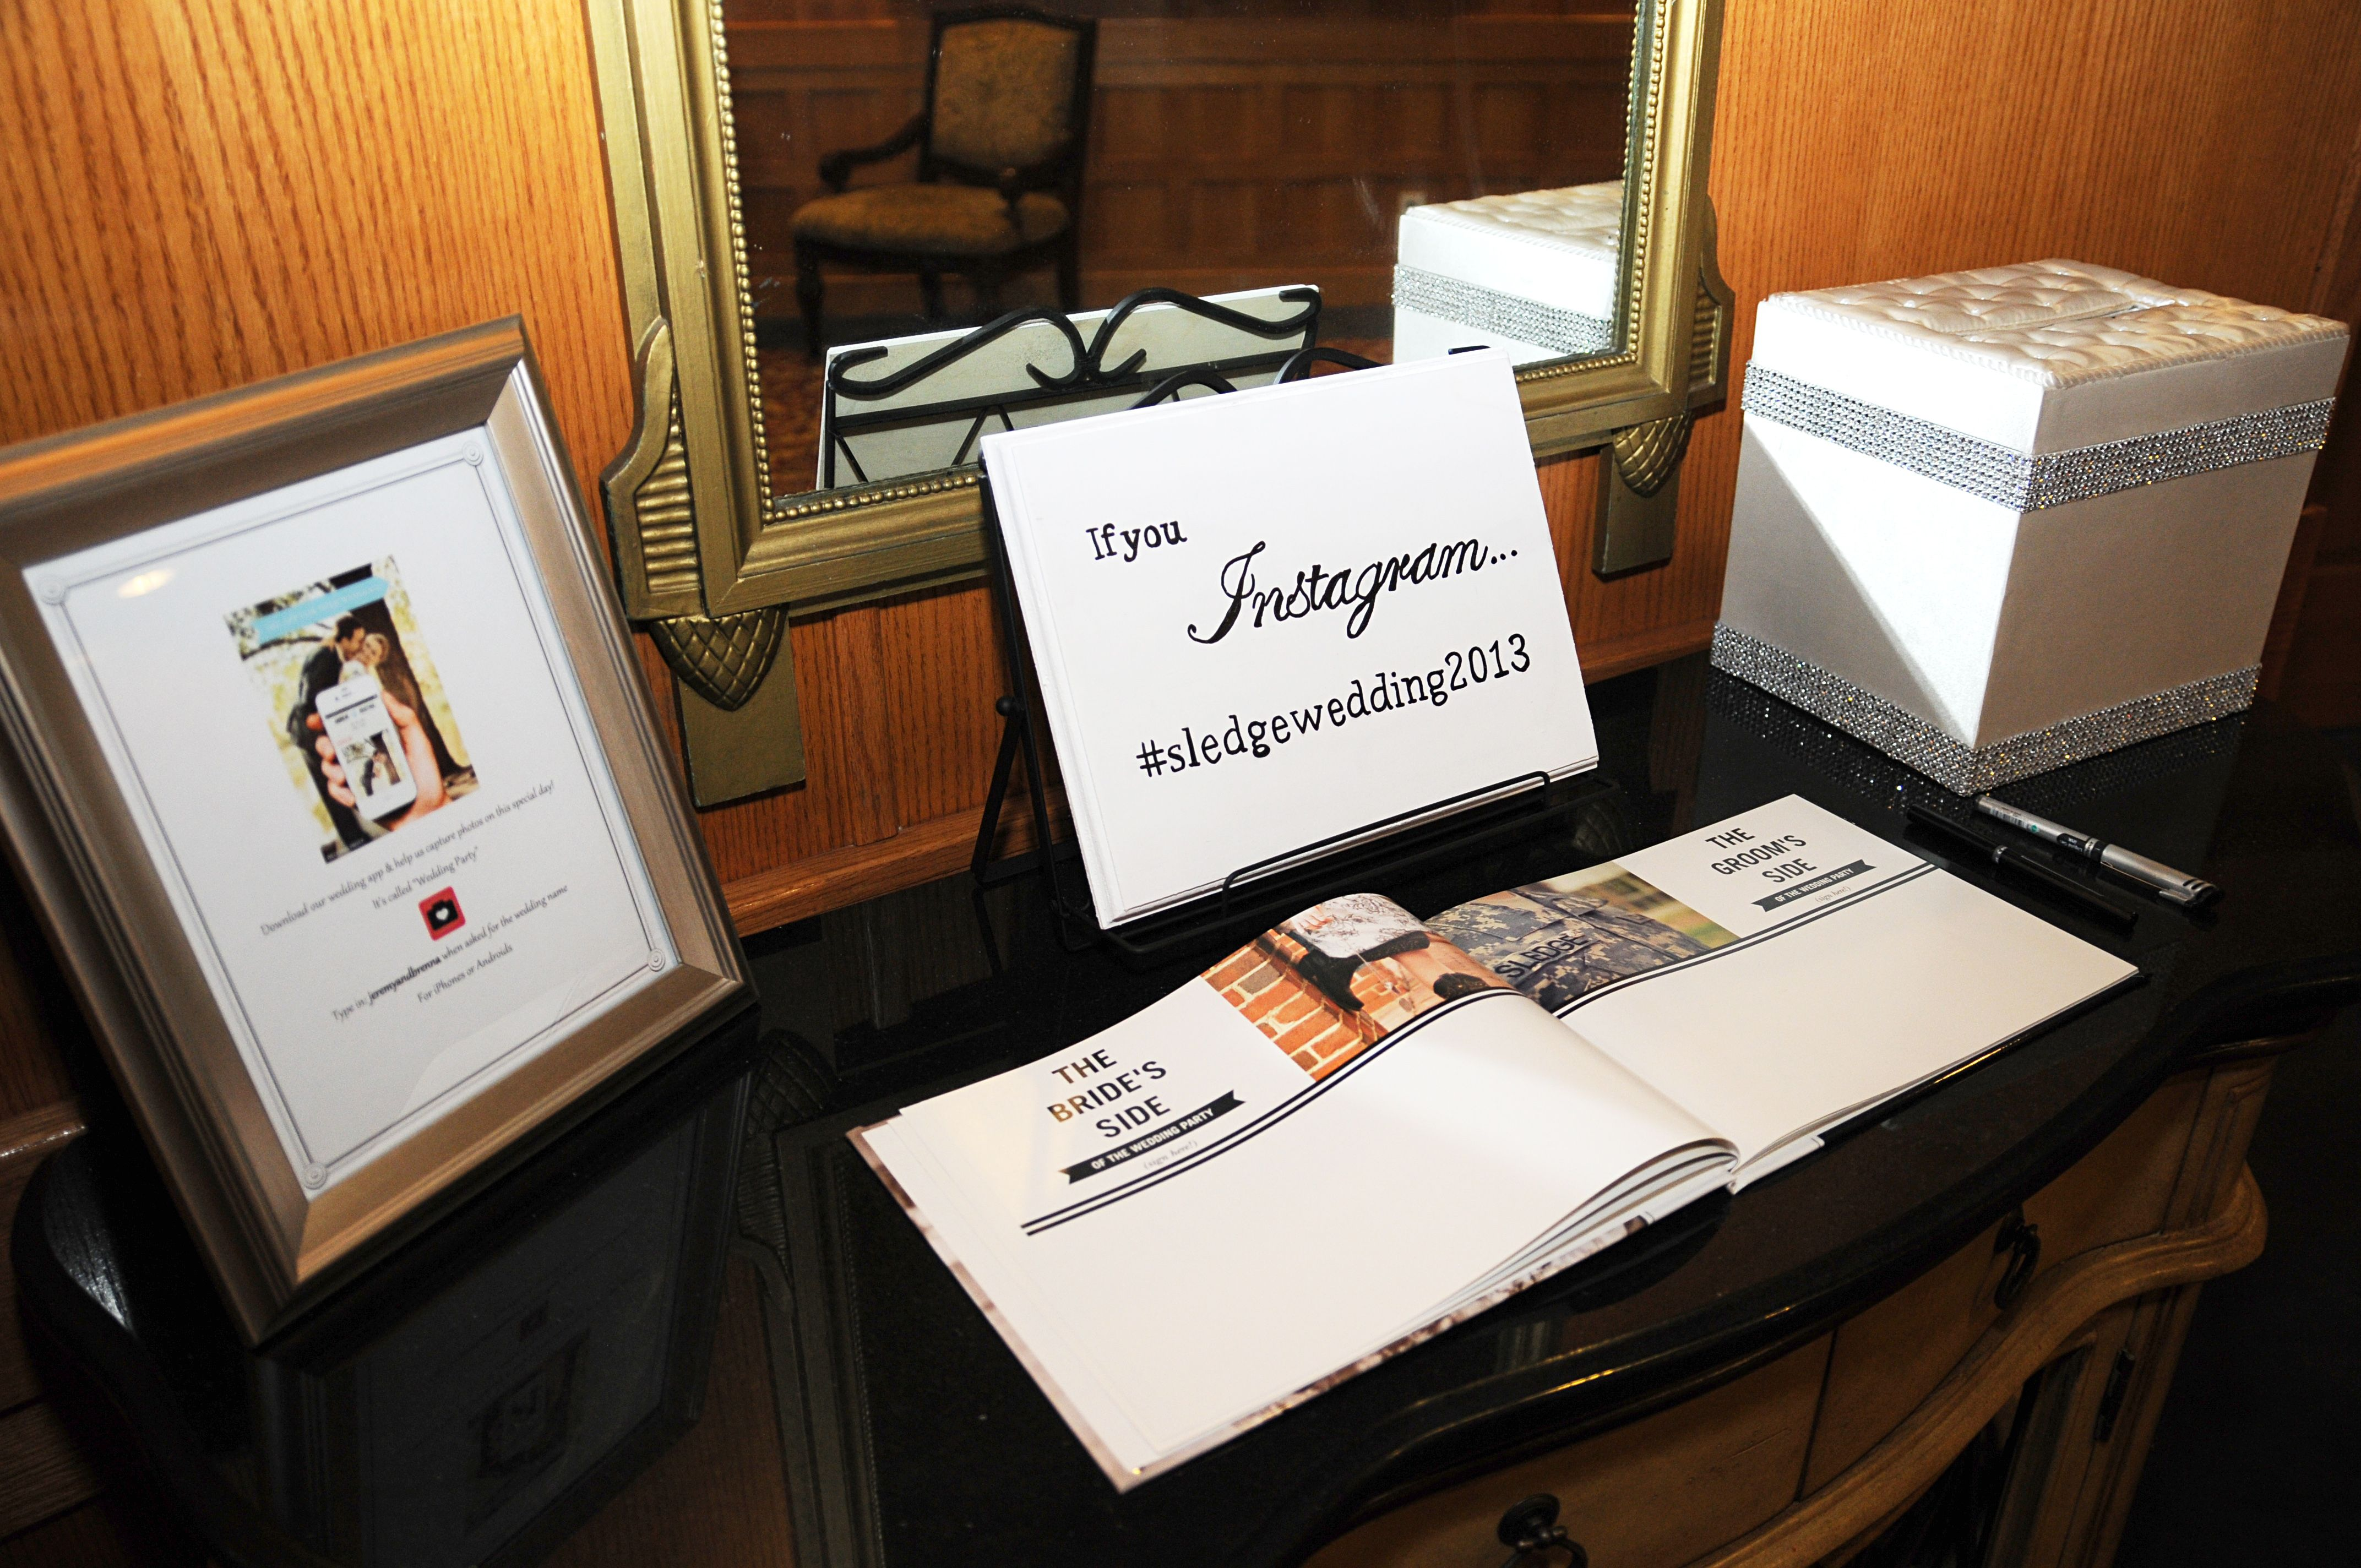 """For our wedding we used the """"Wedding Party App"""" so our guests could upload the photos they took all in one place. I made our guestbook using """"Shutterfly"""". Our Instagram hashtag was #sledgewedding2013"""